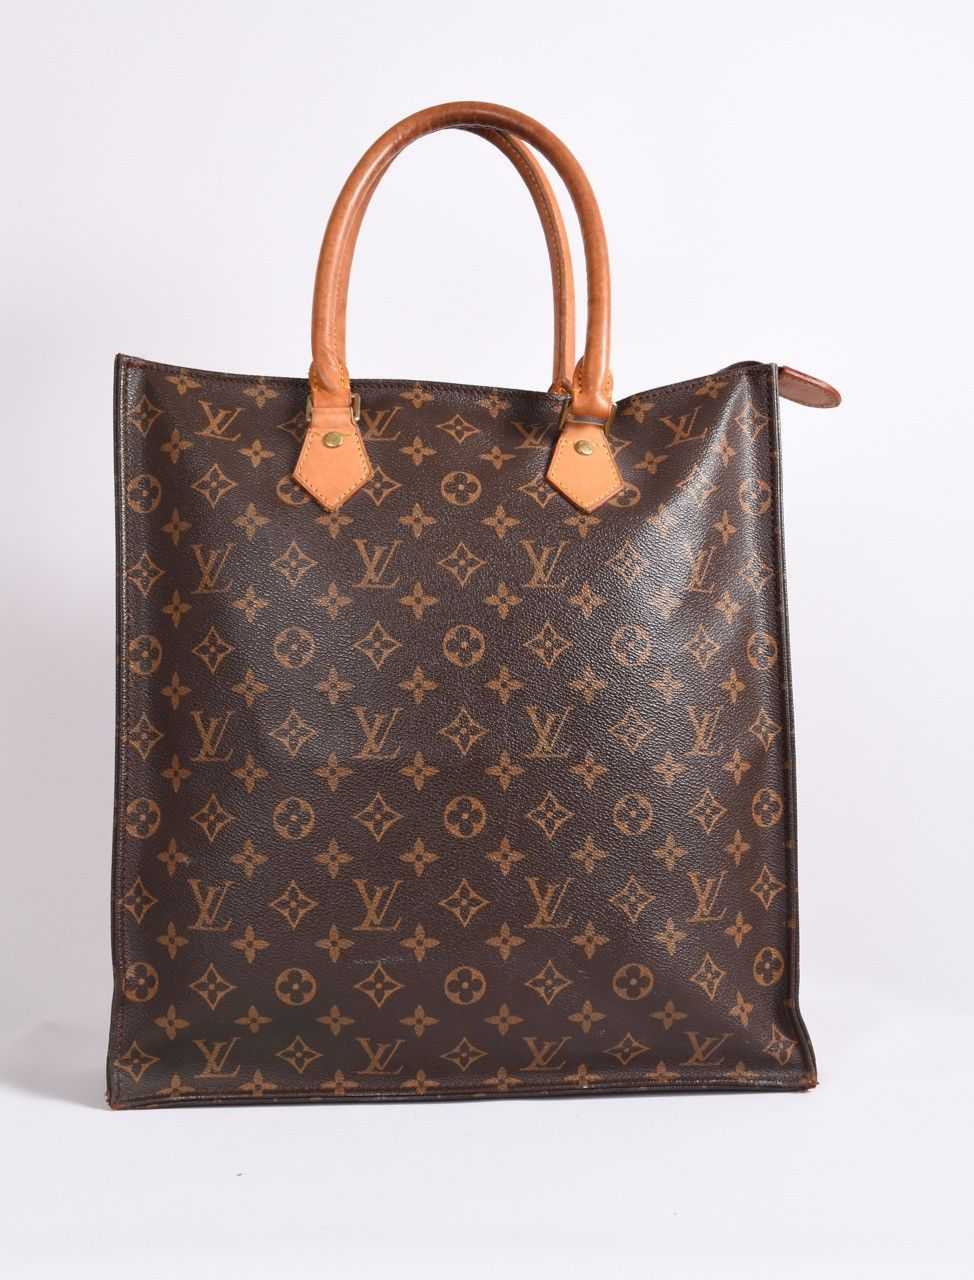 Brown and tan monogram coated canvas Louis Vuitton Sac Plat with brass  hardware c6bb2c24dbbd7